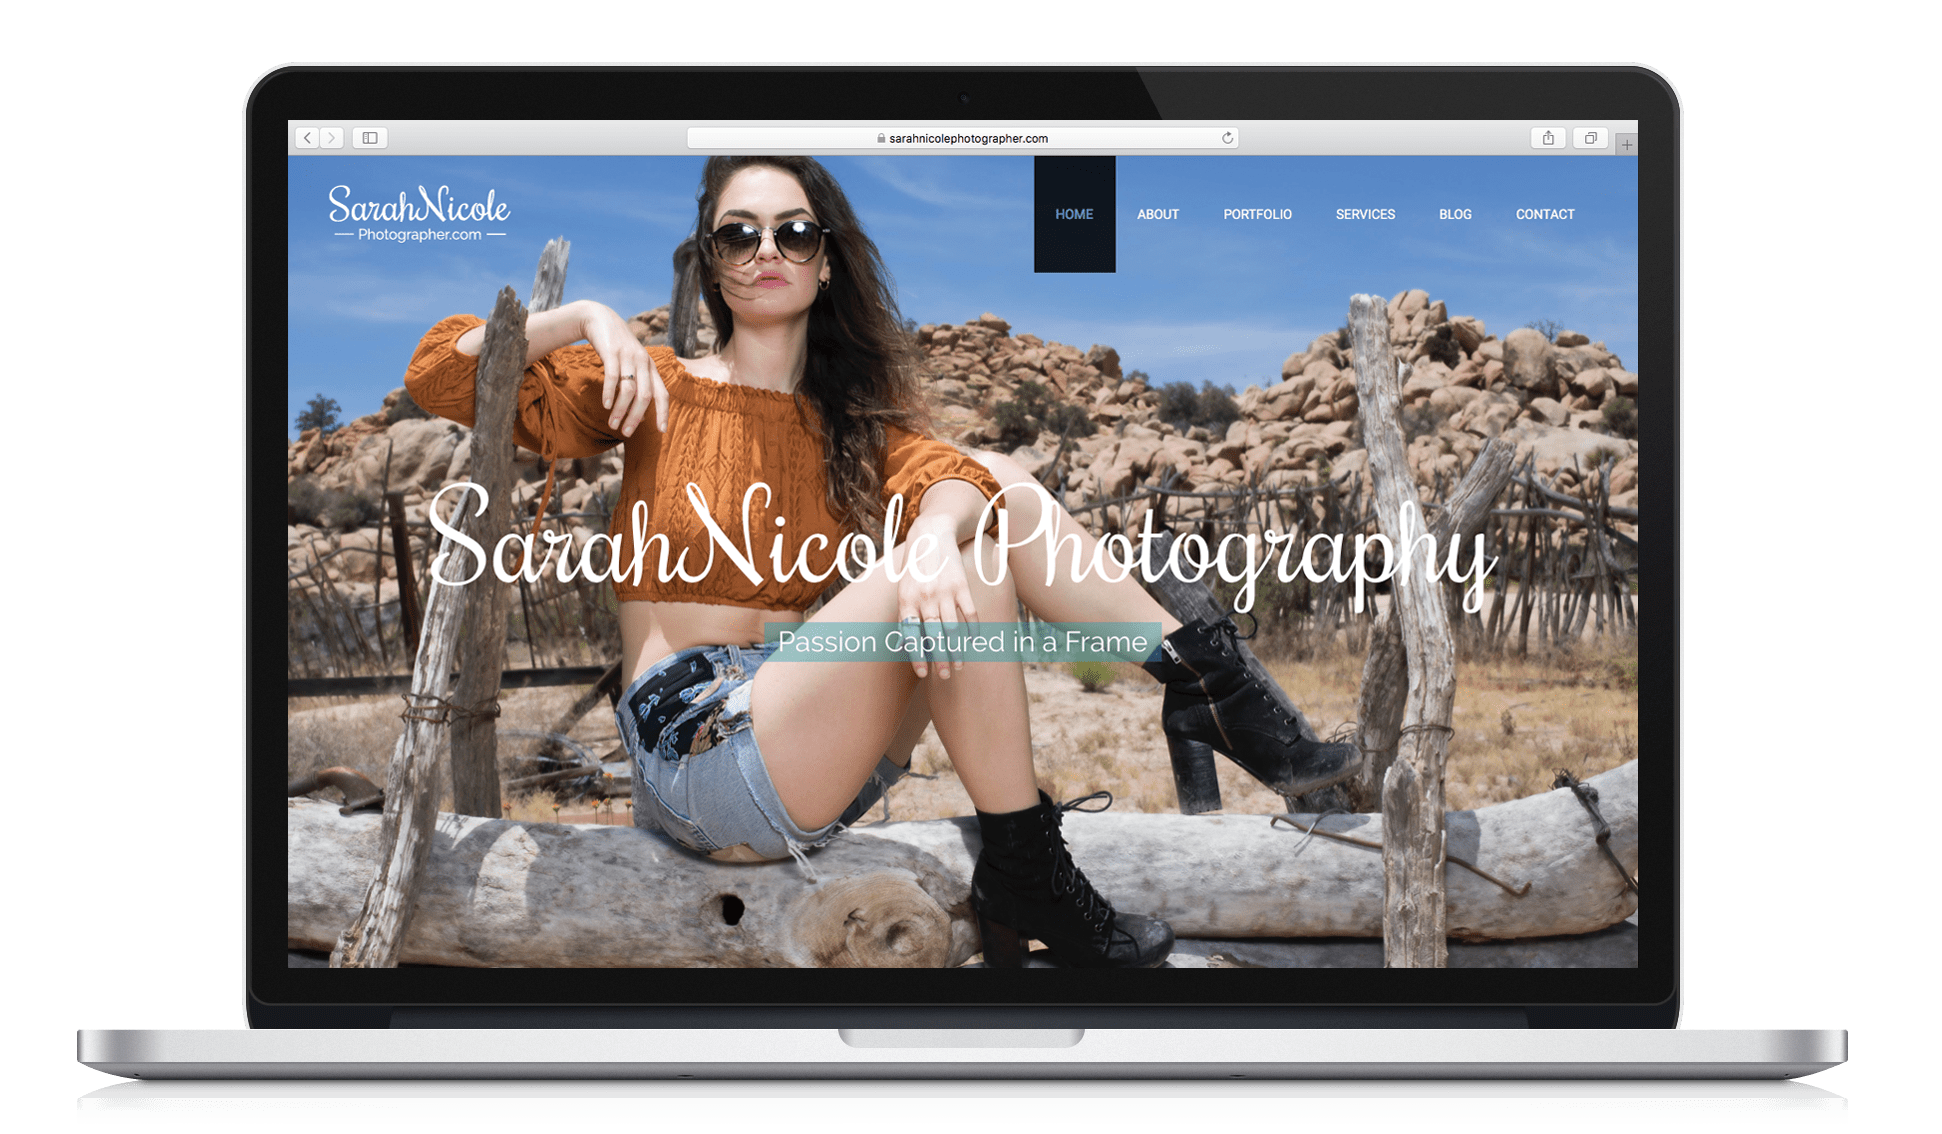 SarahNicole-Photography_Desktop_Mock-Up-of-Web-Design.png